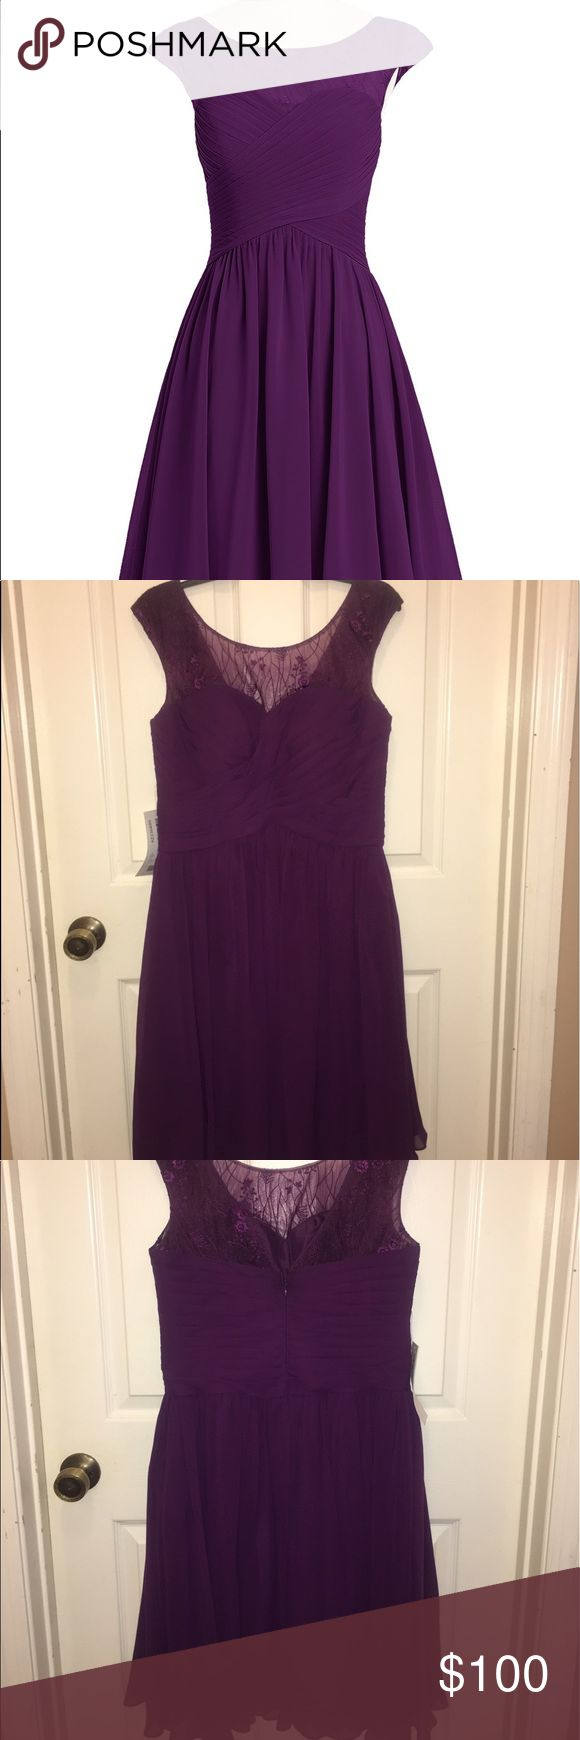 NWT - Azazie Betty Dress in Grape NWT - Purple knee-length a-line chiffon cocktail dress. This grape colored Betty dress from Azazie is made from chiffon and lace, featuring a pleated sweetheart neckline with a lace overlay and cap sleeves. Perfect for events, weddings, bridemaids, and cocktail parties! View size chart for measurements. Dress is size A12. Ships quickly from smoke free home. Make an offer! Azazie Dresses